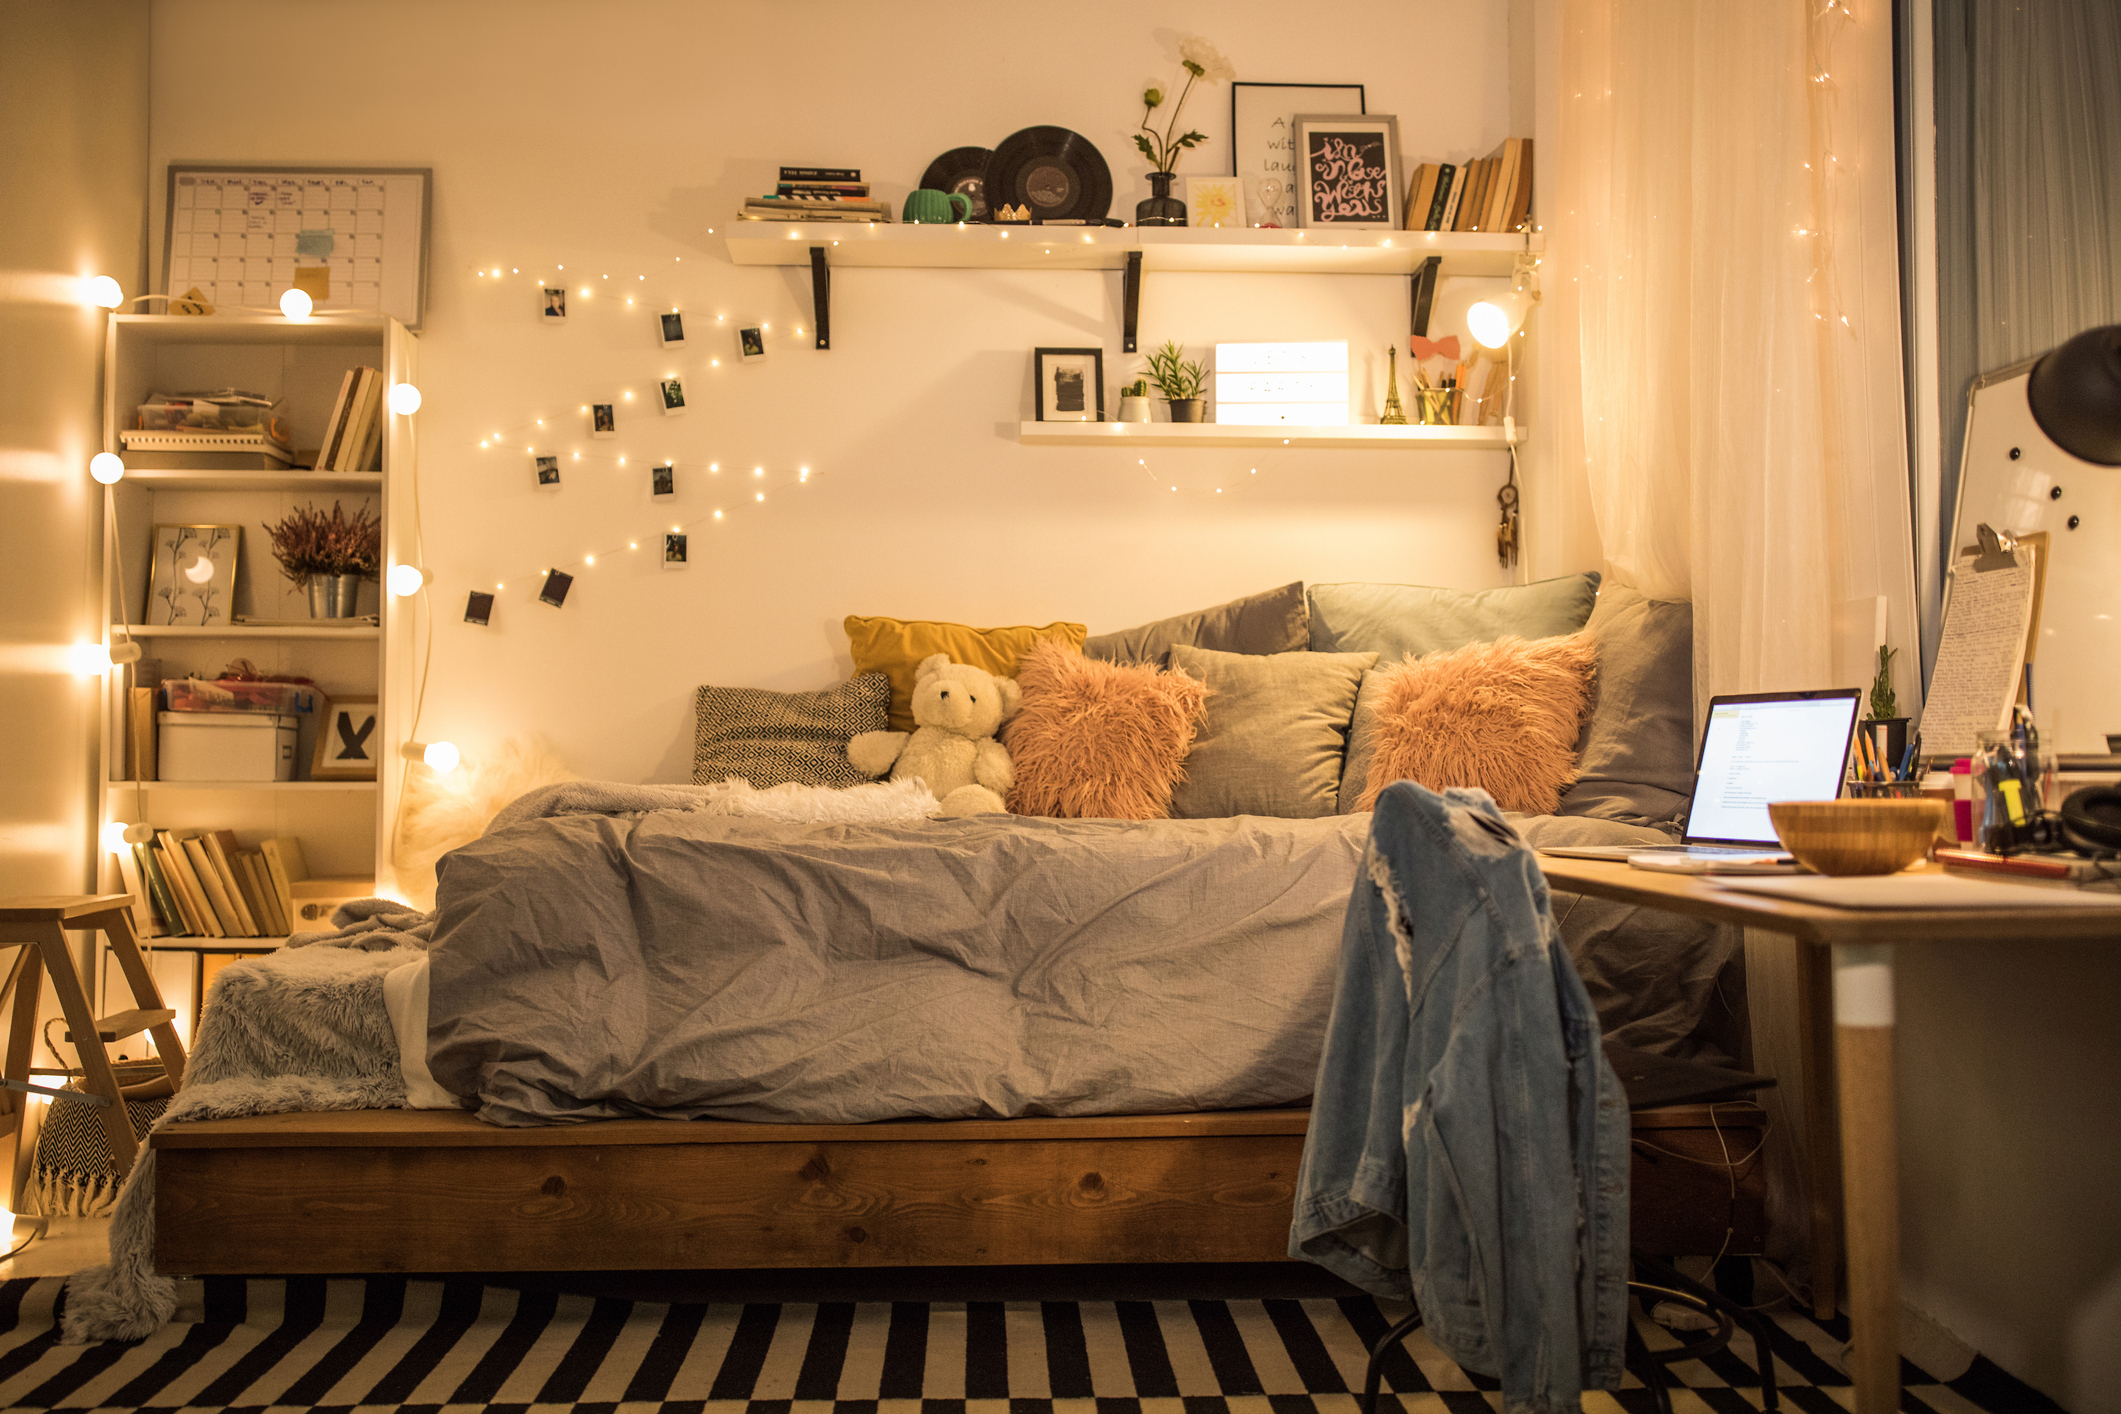 26 Stylish, Space-Saving Dorm Room Ideas - Freshome